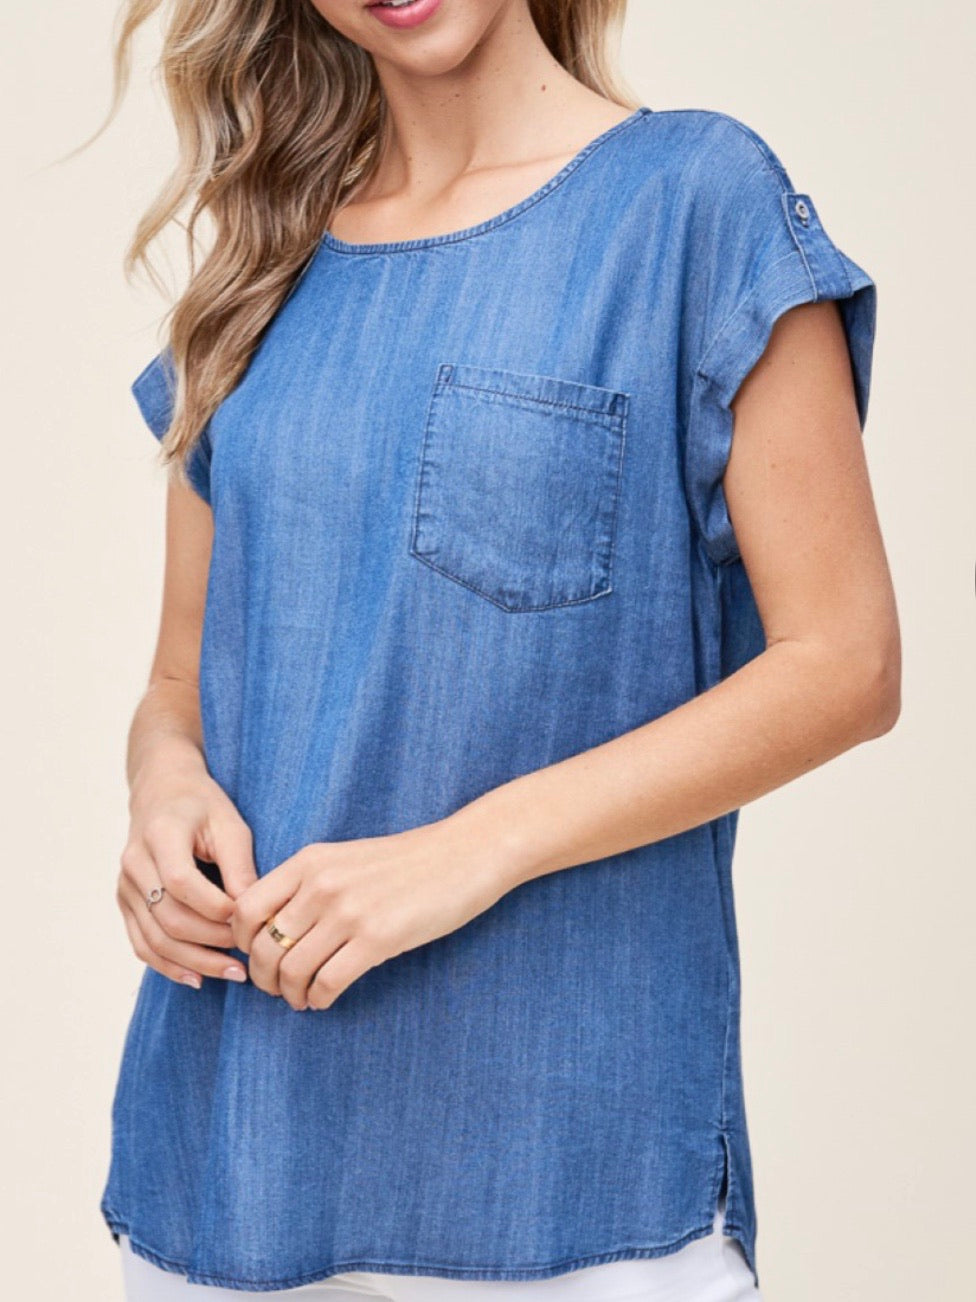 ST131600 Medium Wash Denim Round Neck Top